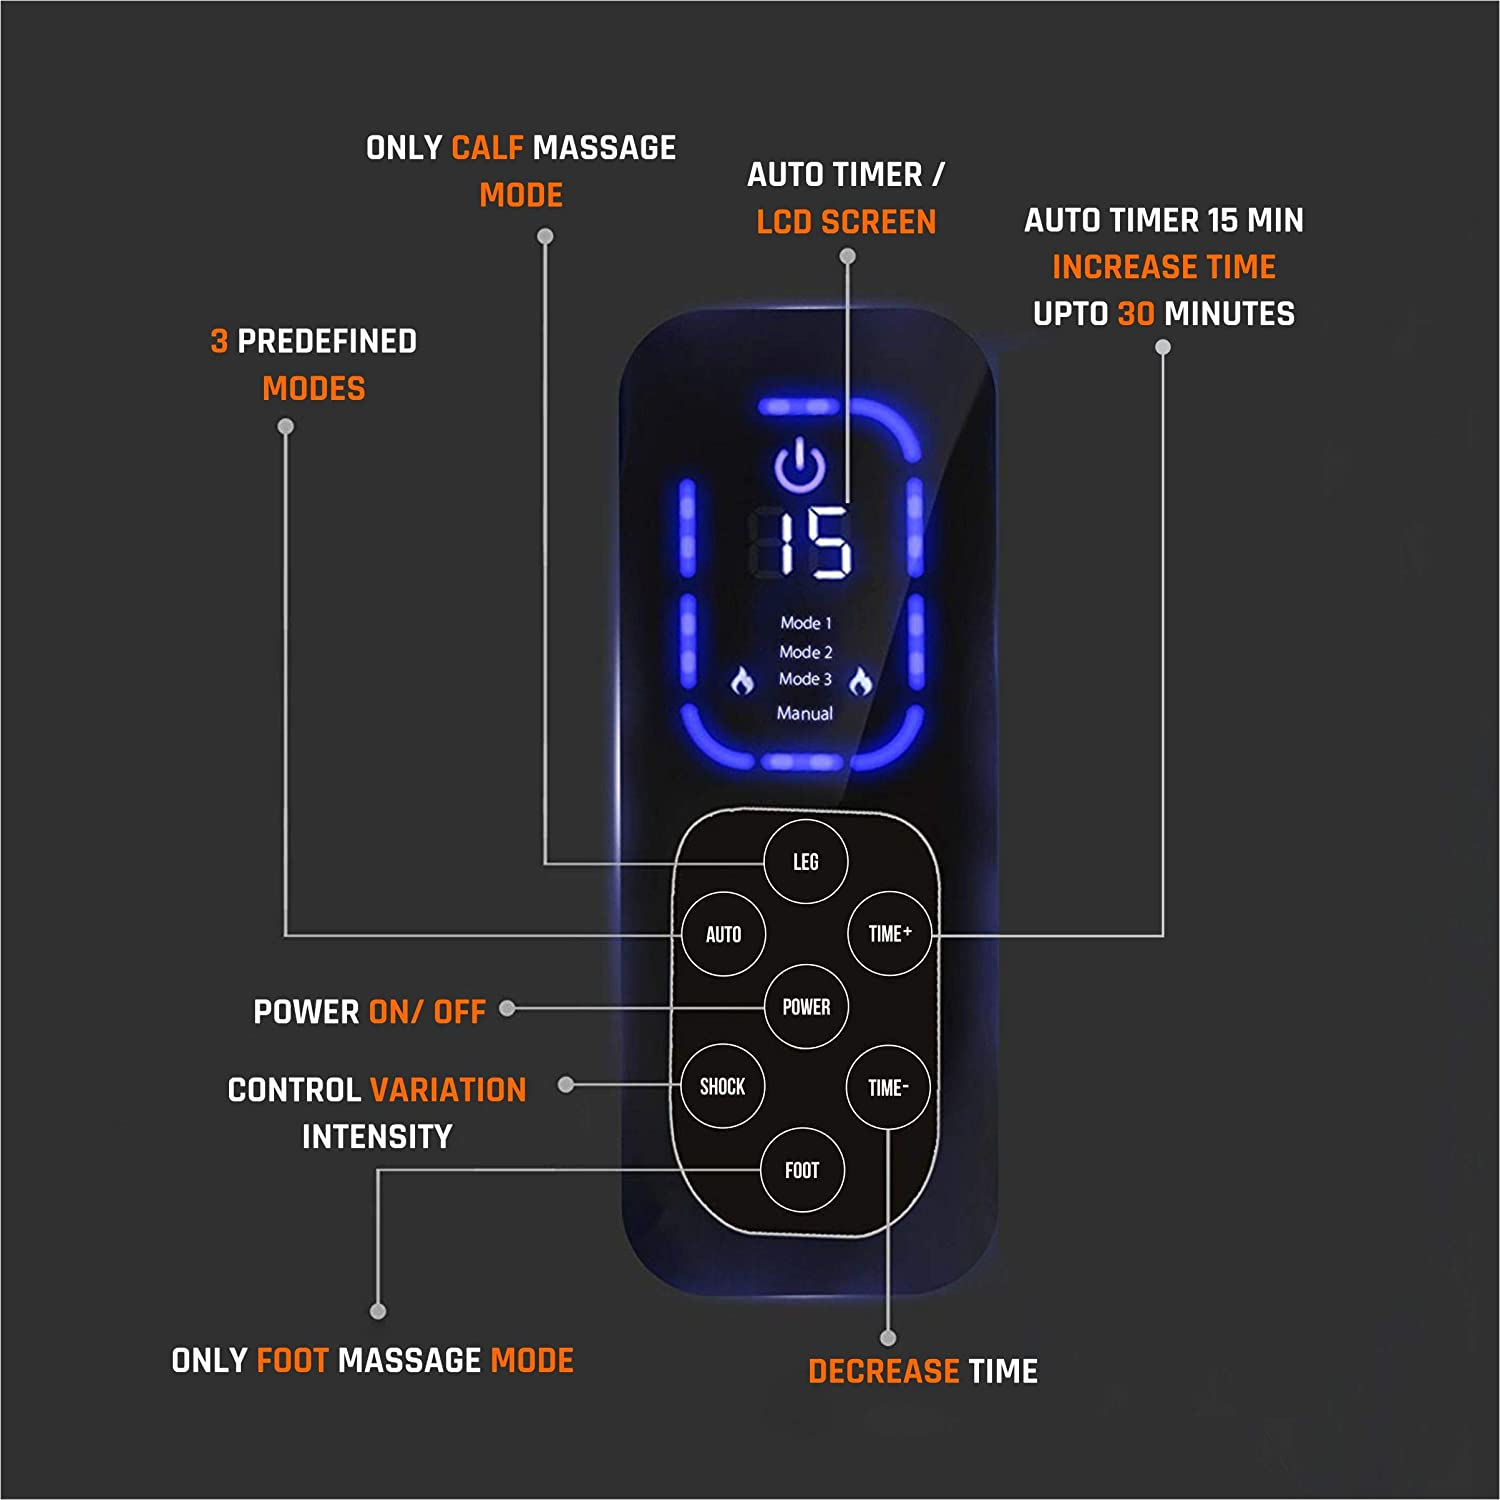 The functions on the remote for the Reach Bliss Leg Massager.